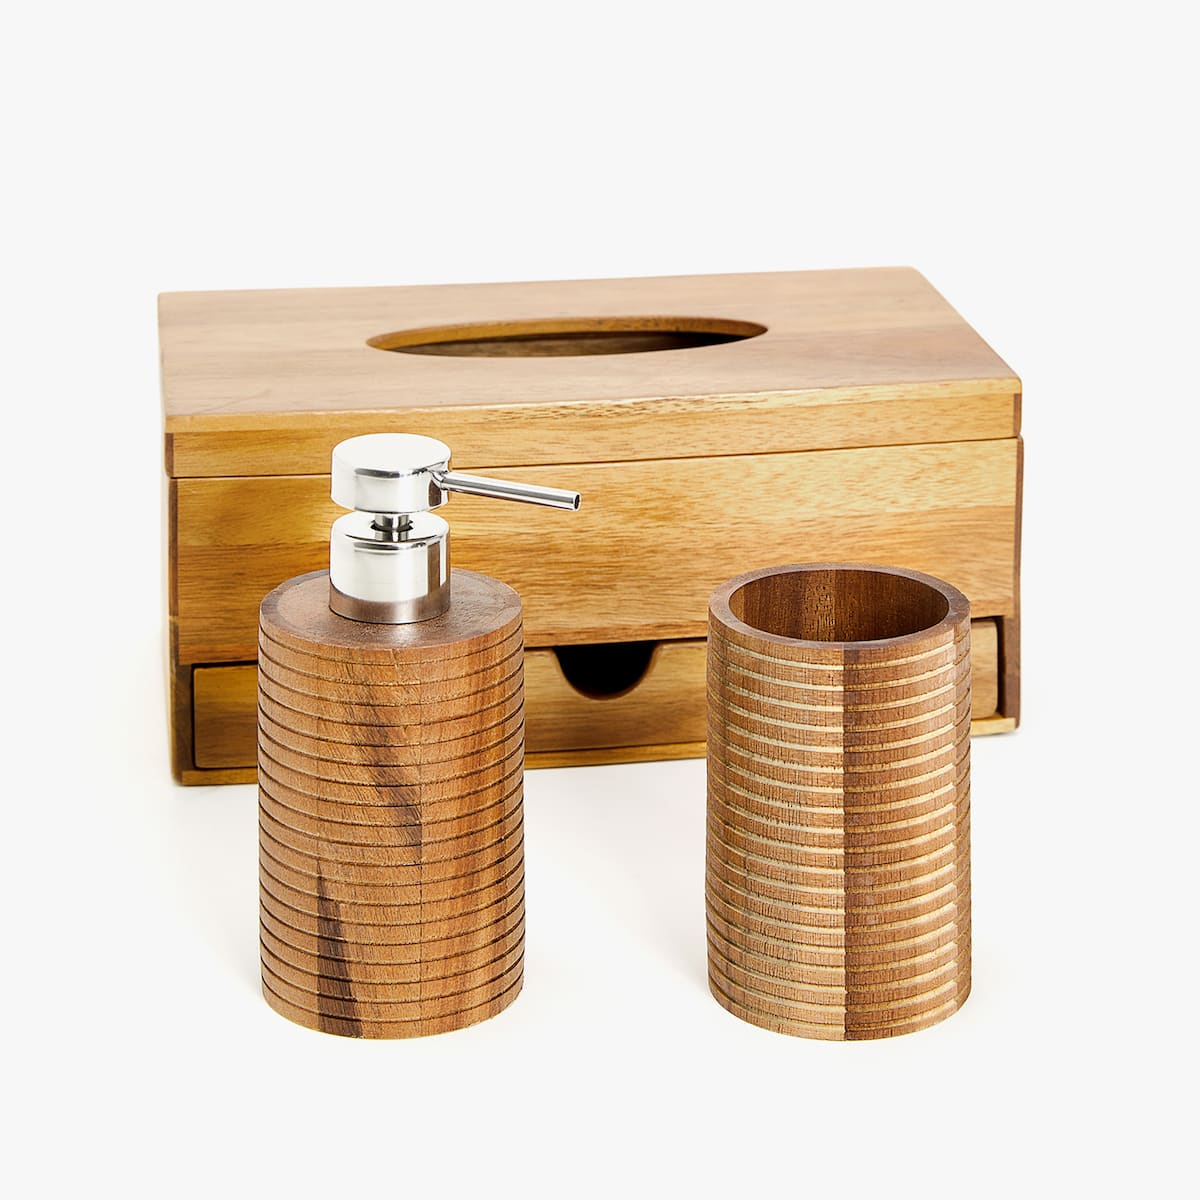 Holz Accessoires Bad Bad Accessoires Holz